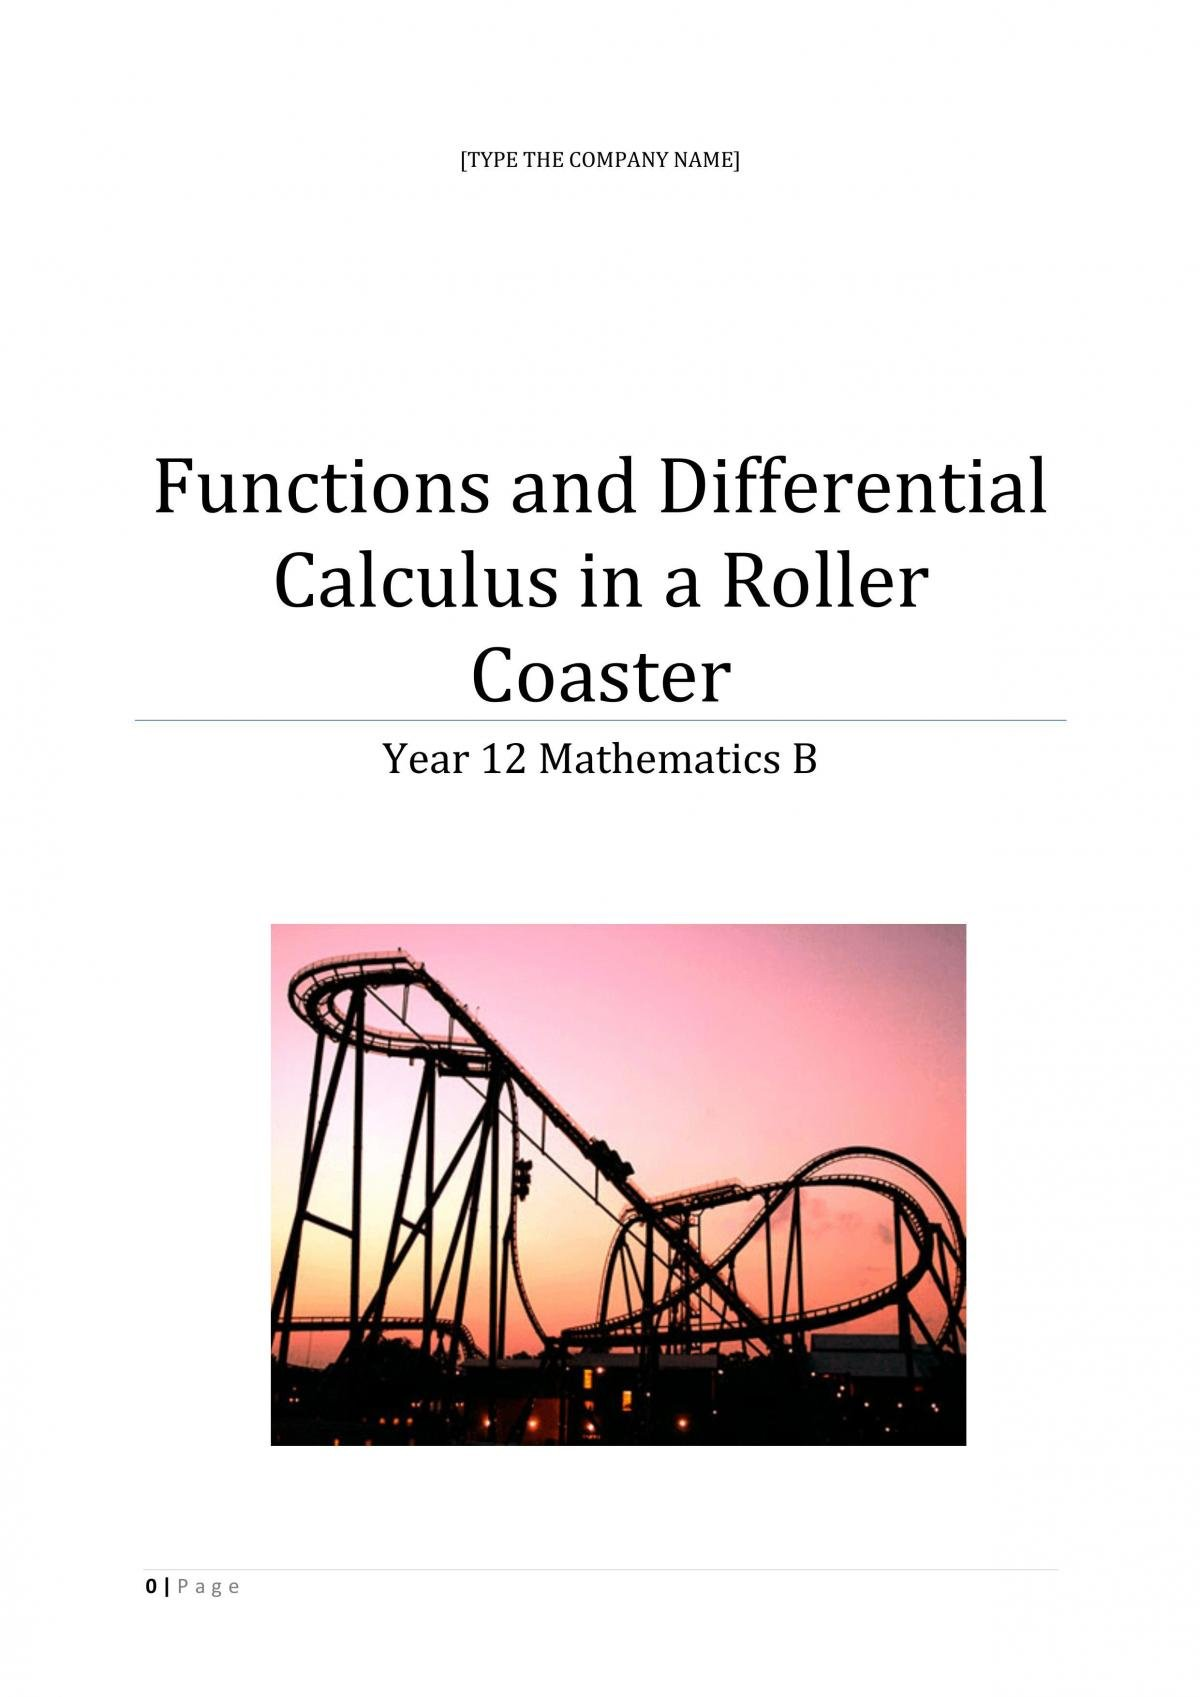 Designing a Rollercoaster with Different Functions - Page 1